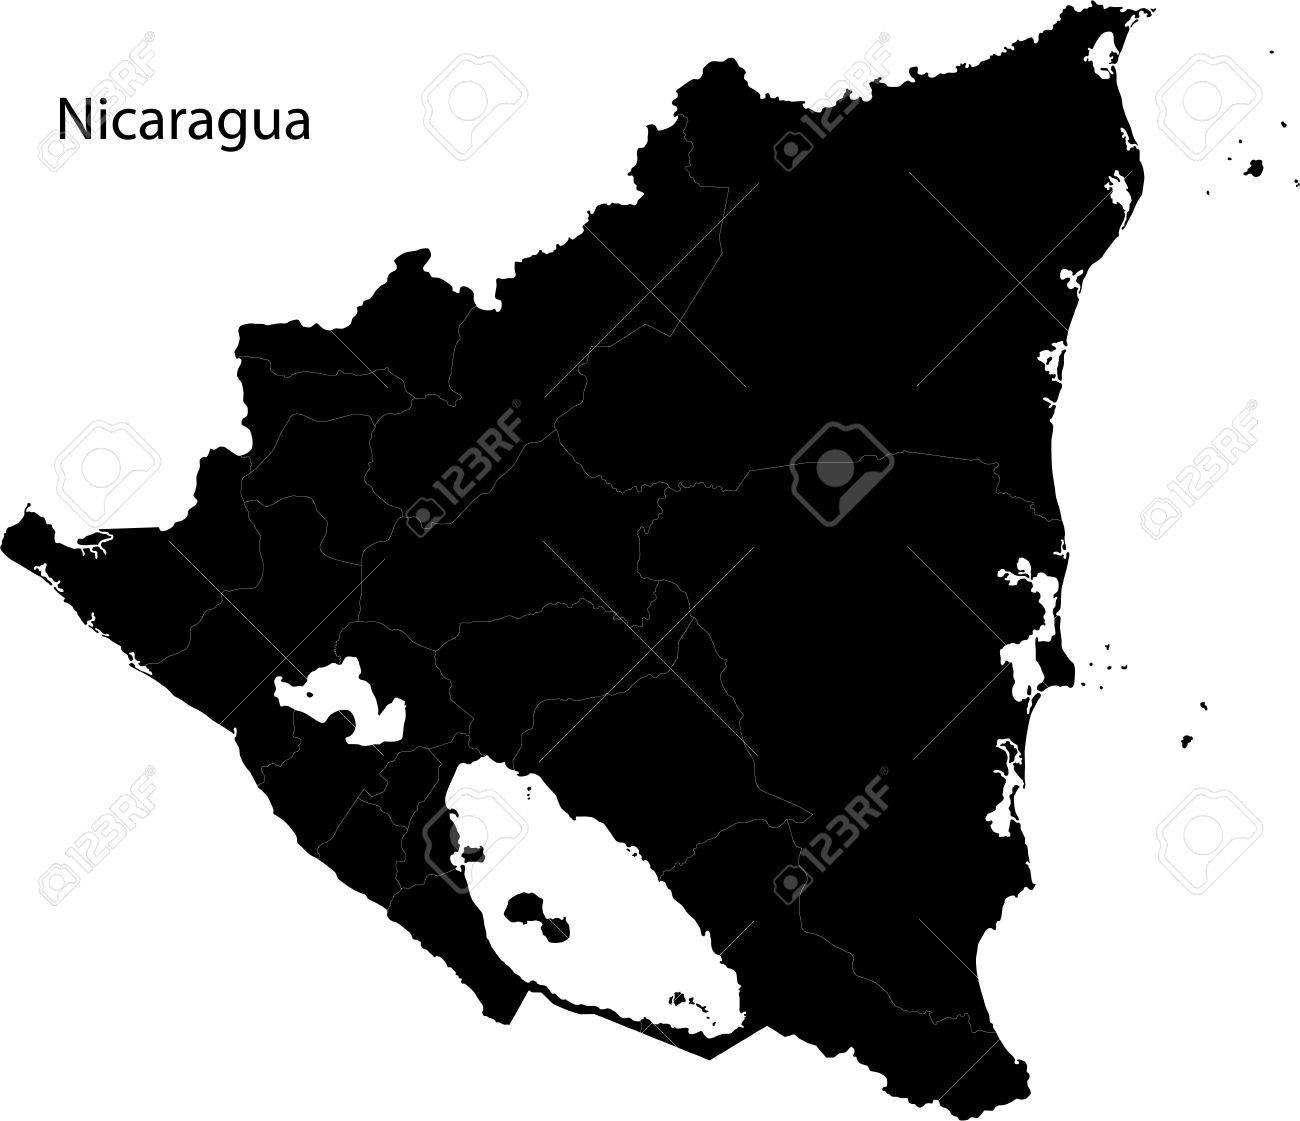 Black Nicaragua Map With Department Borders Royalty Free Cliparts